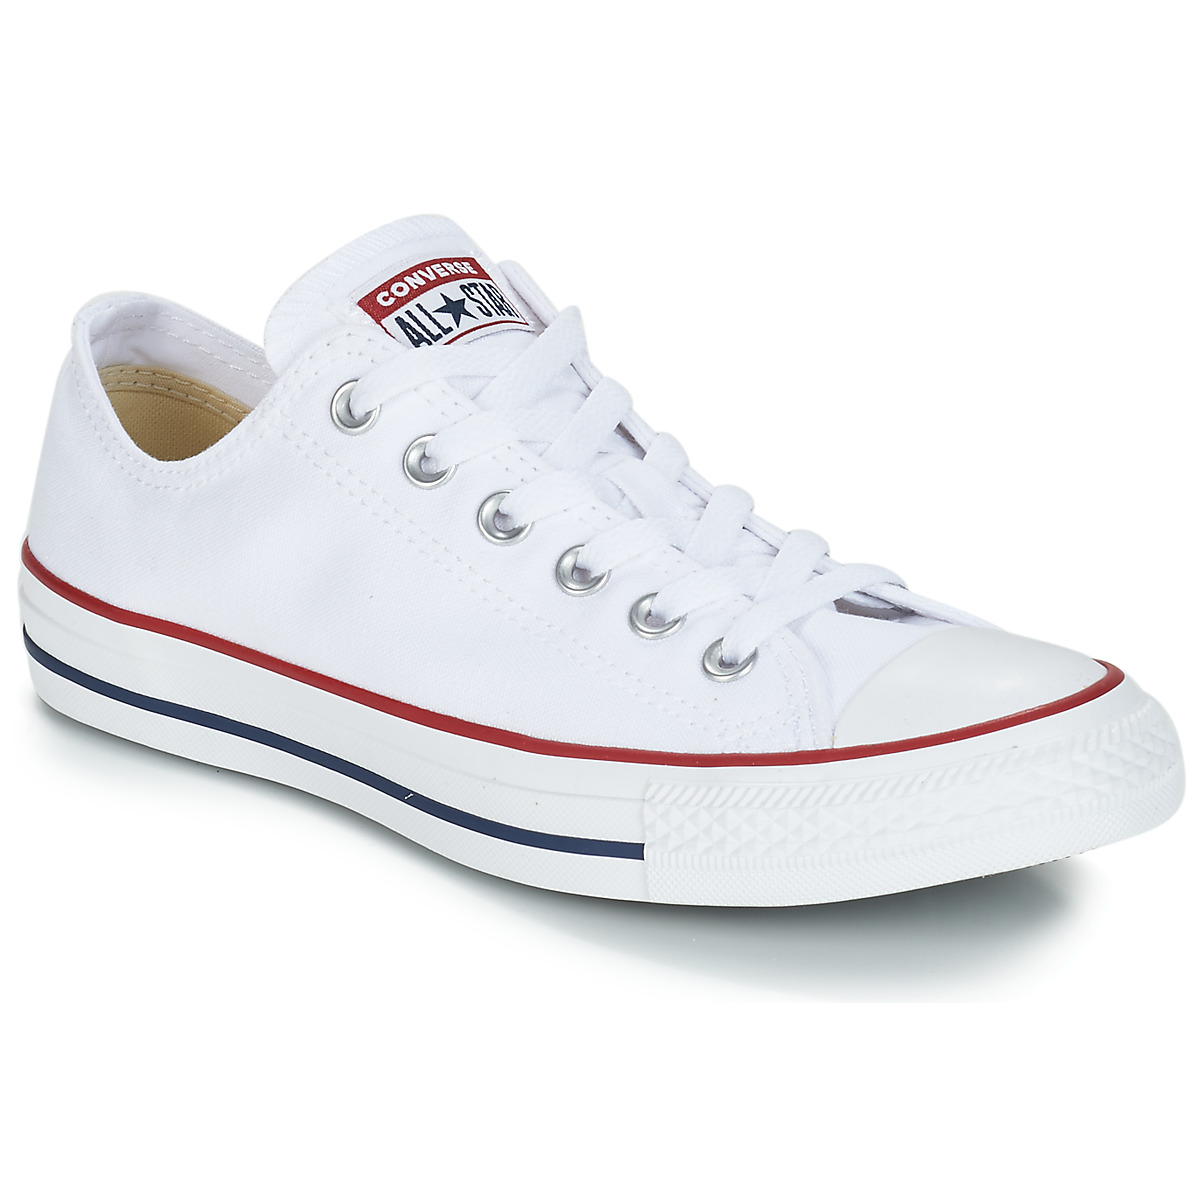 Chaussures Converse All Star Casual femme